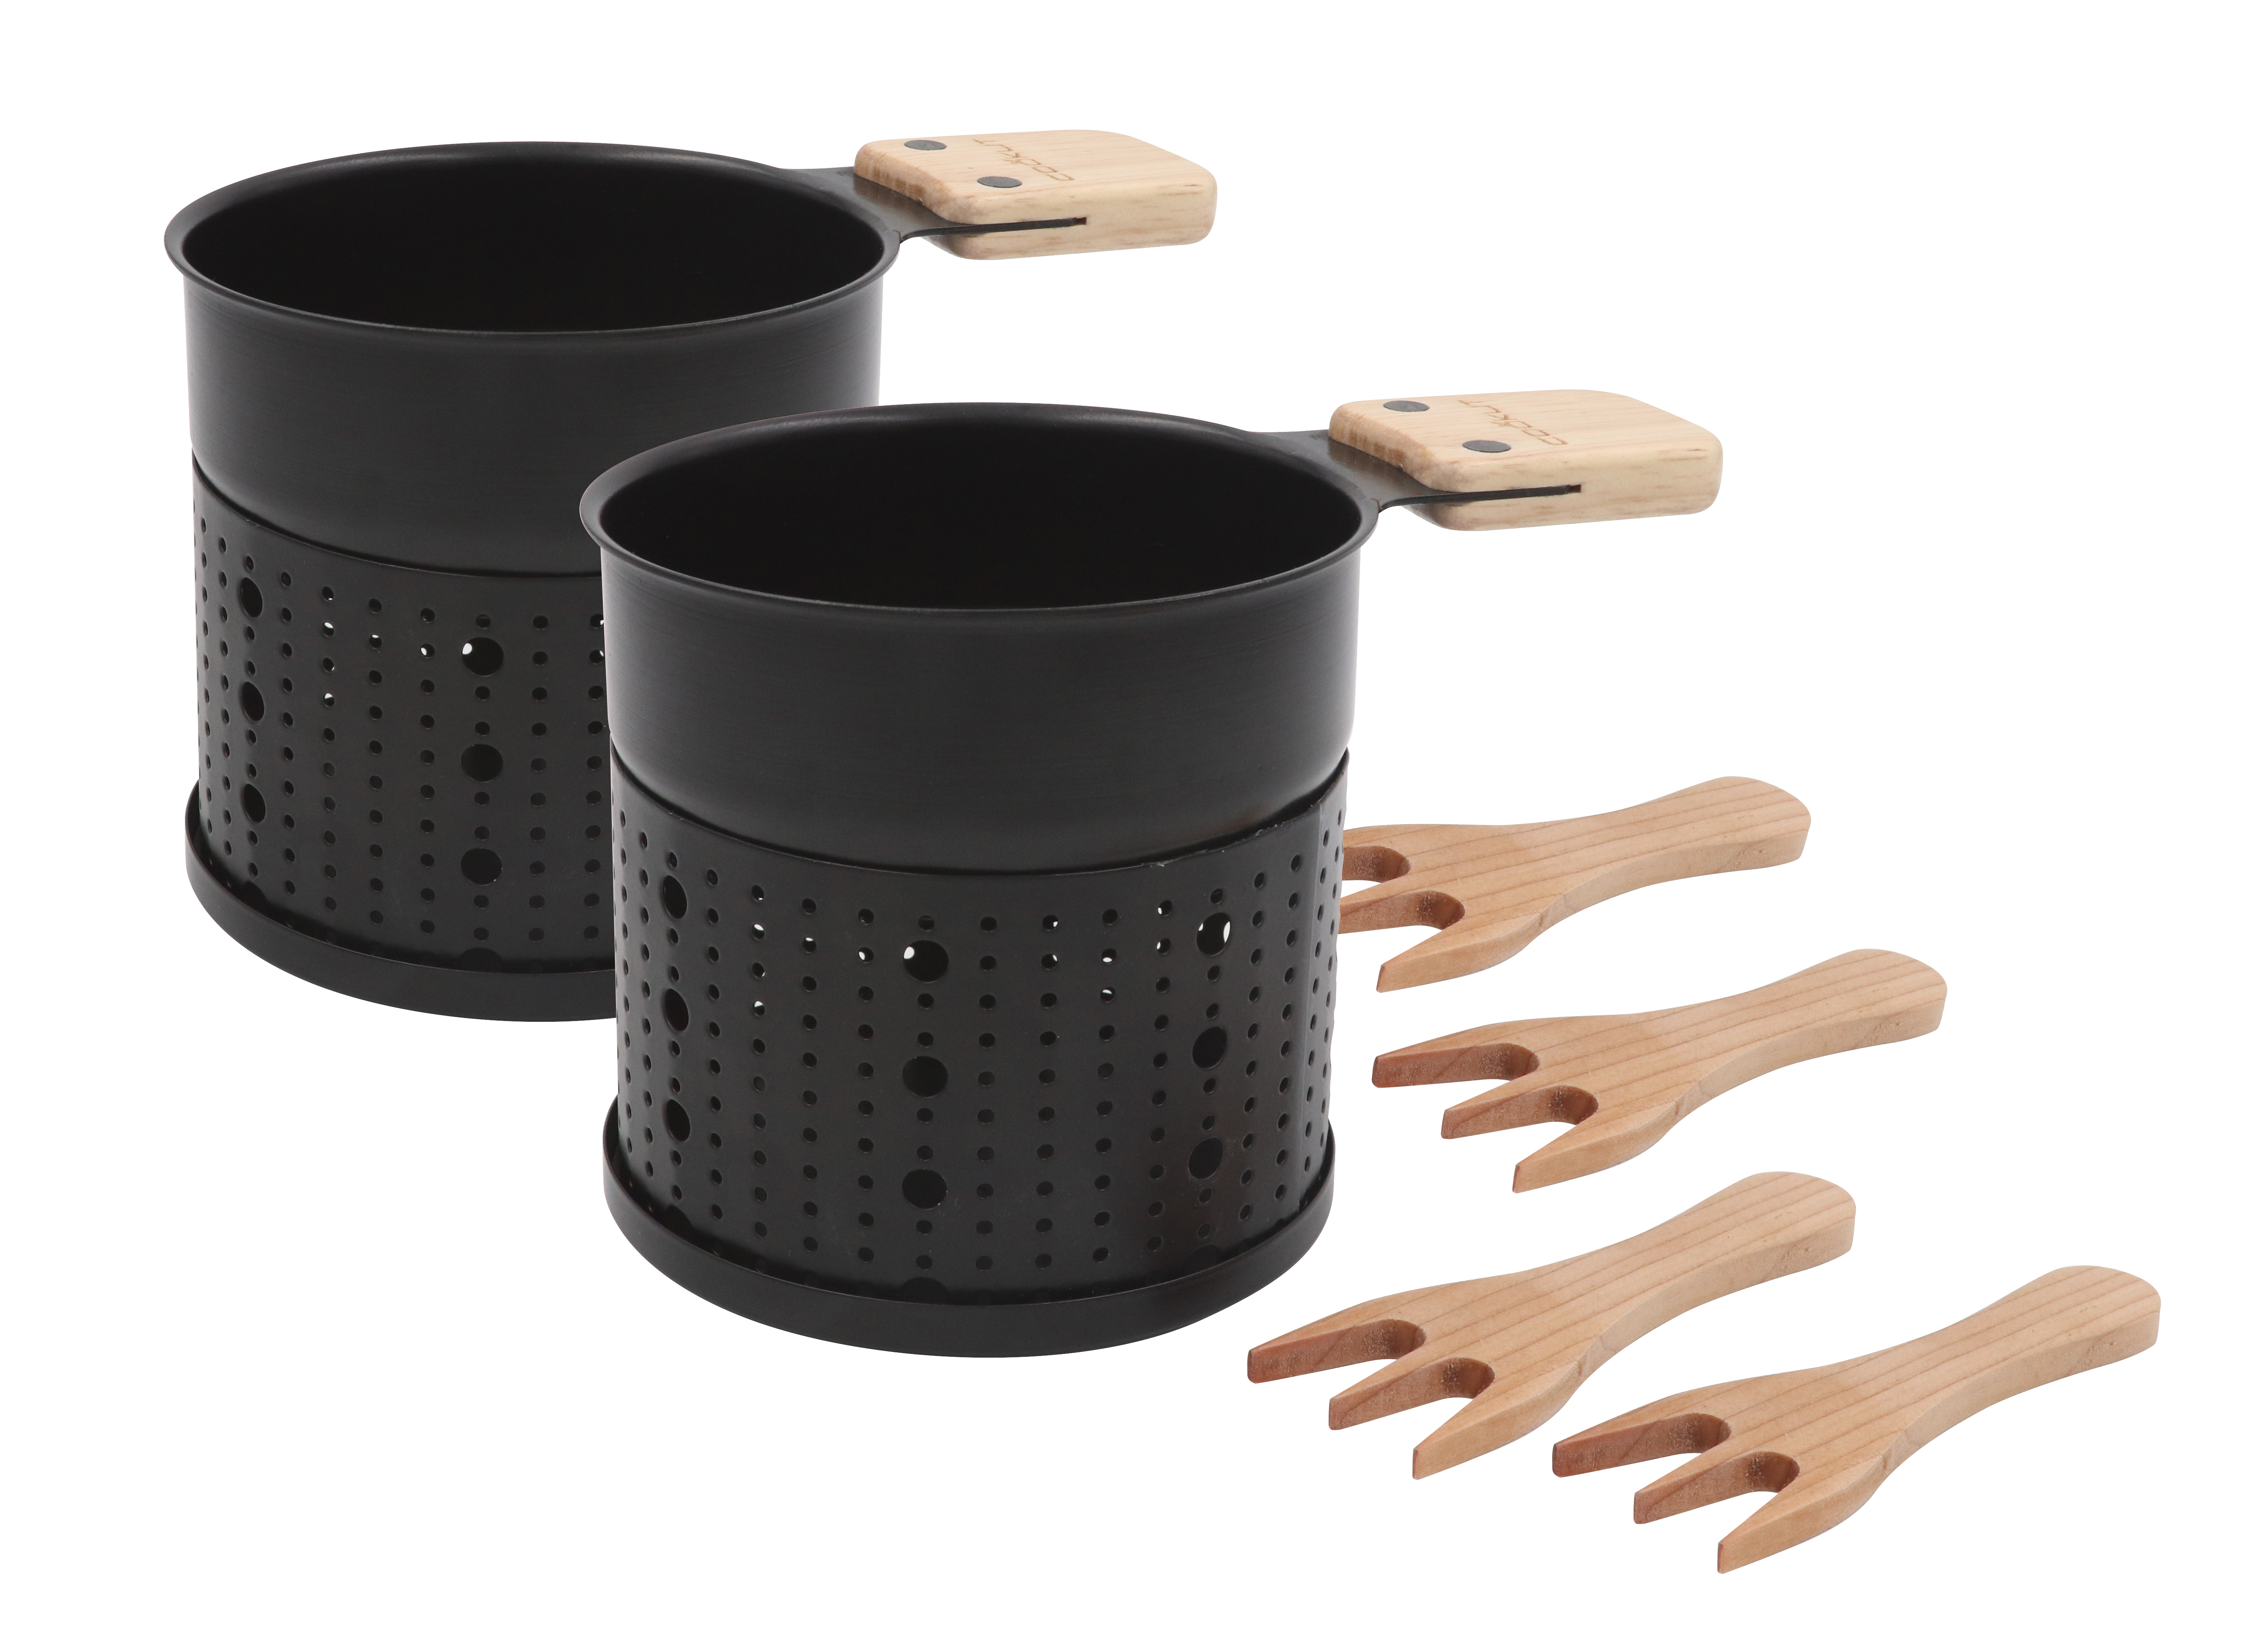 LUMI CHOCO - Chocolate fondue set for 4